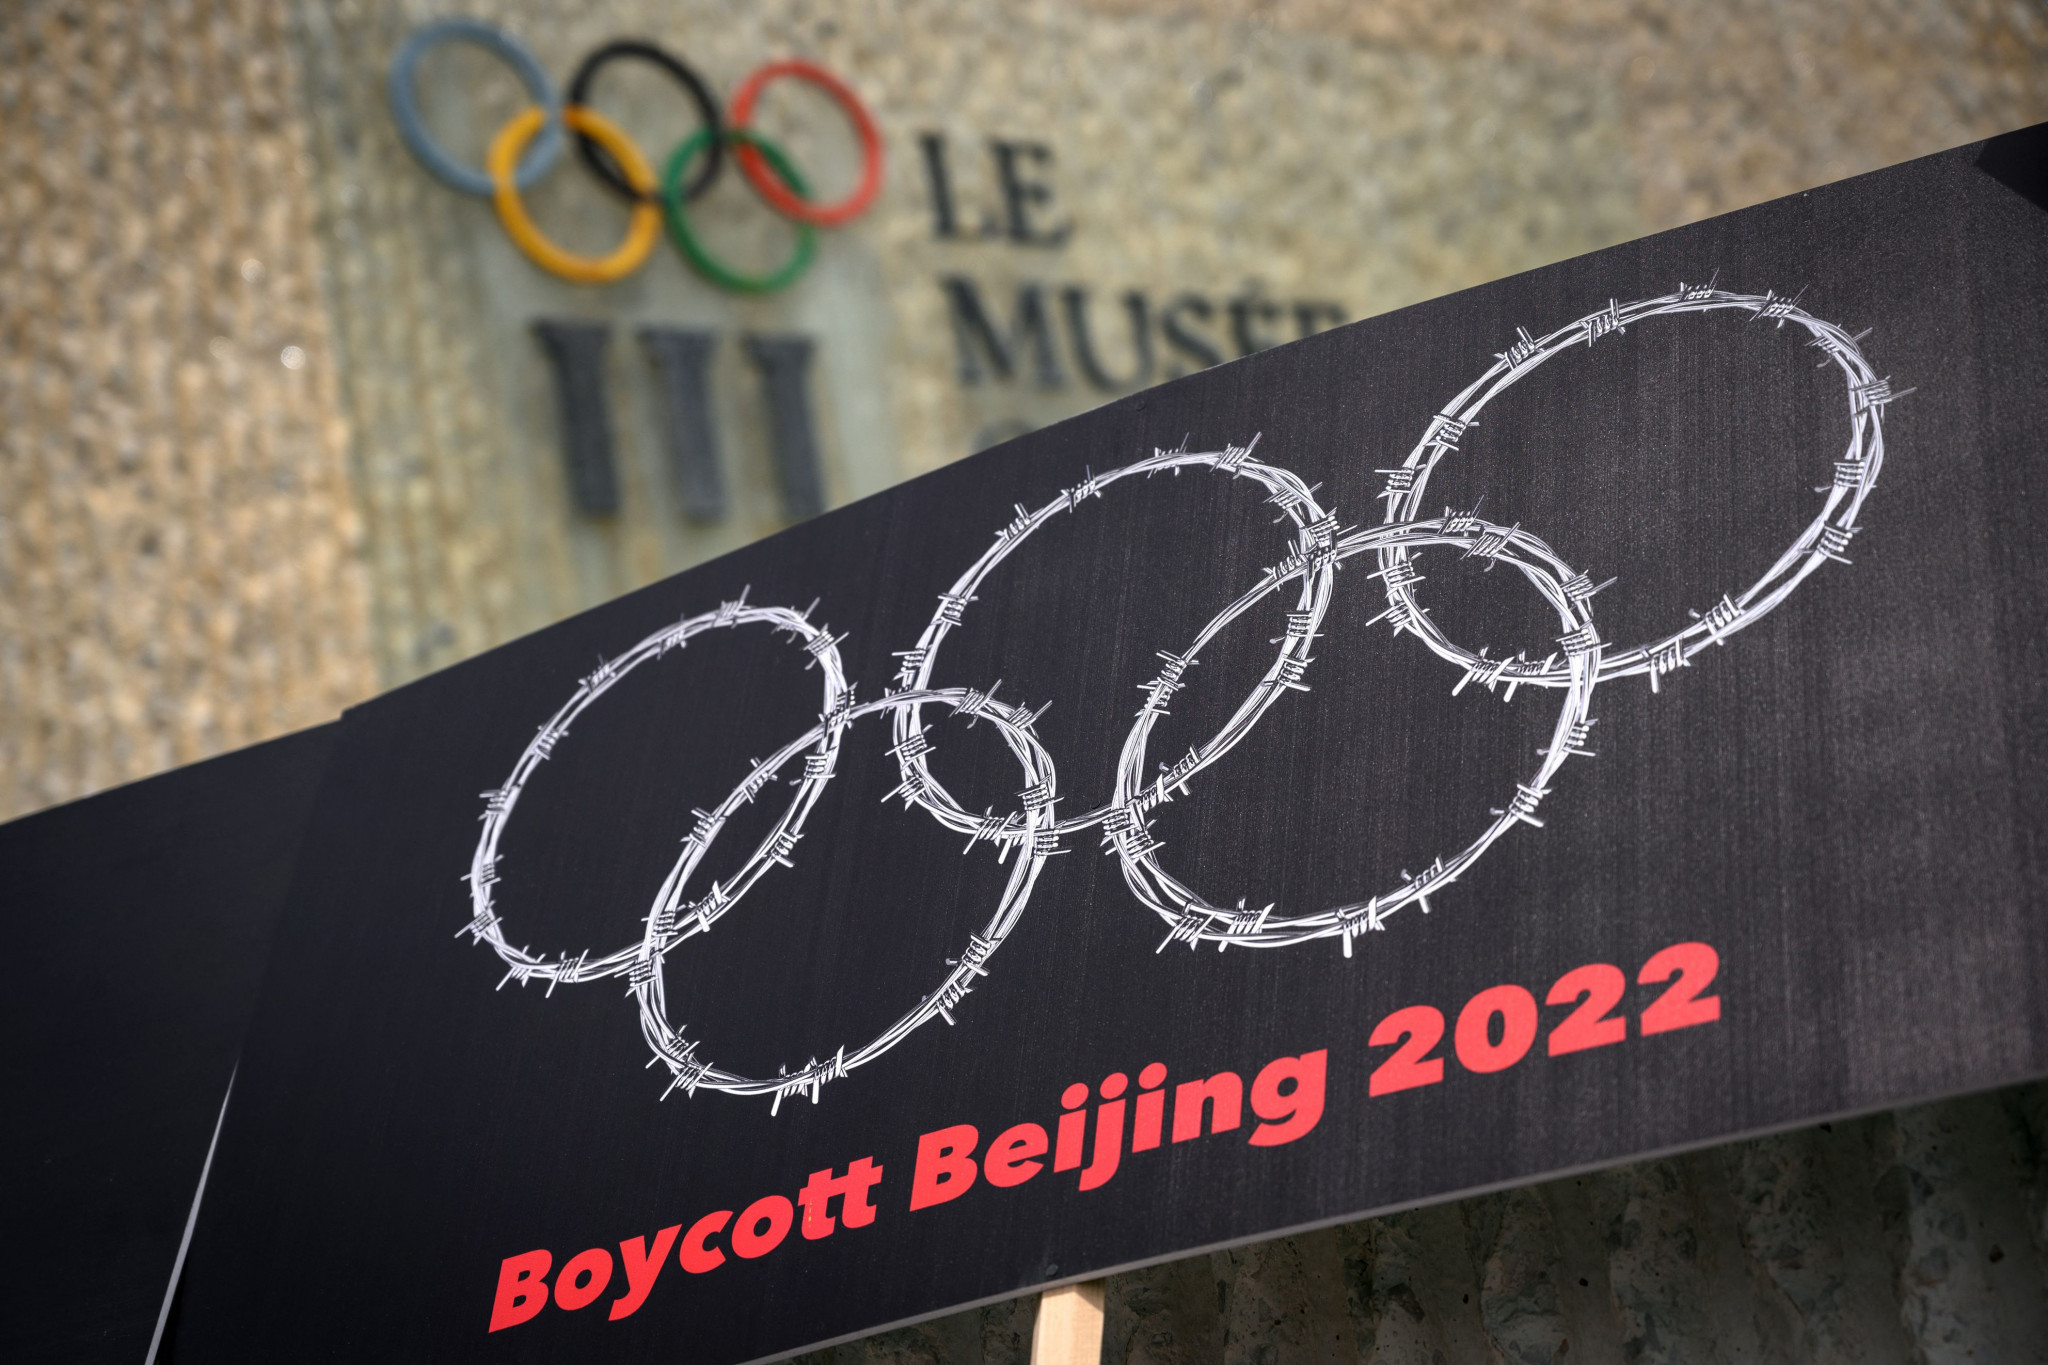 Main opposition party in UK joins calls for diplomatic boycott of Beijing 2022